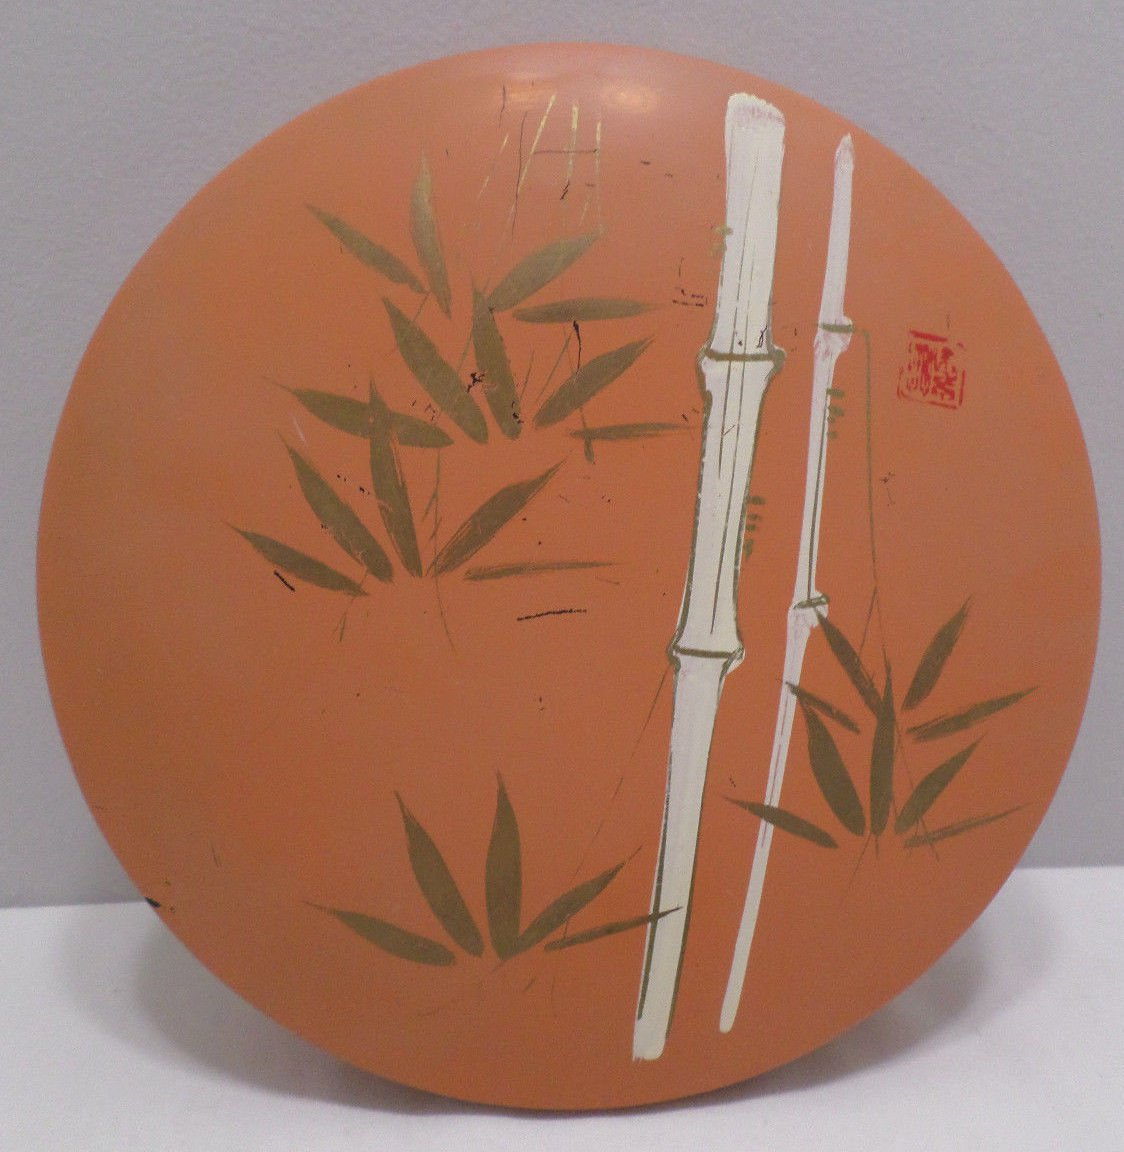 Japanese Box Container Orange Plastic with Bamboo Design Signed by Artist Japan